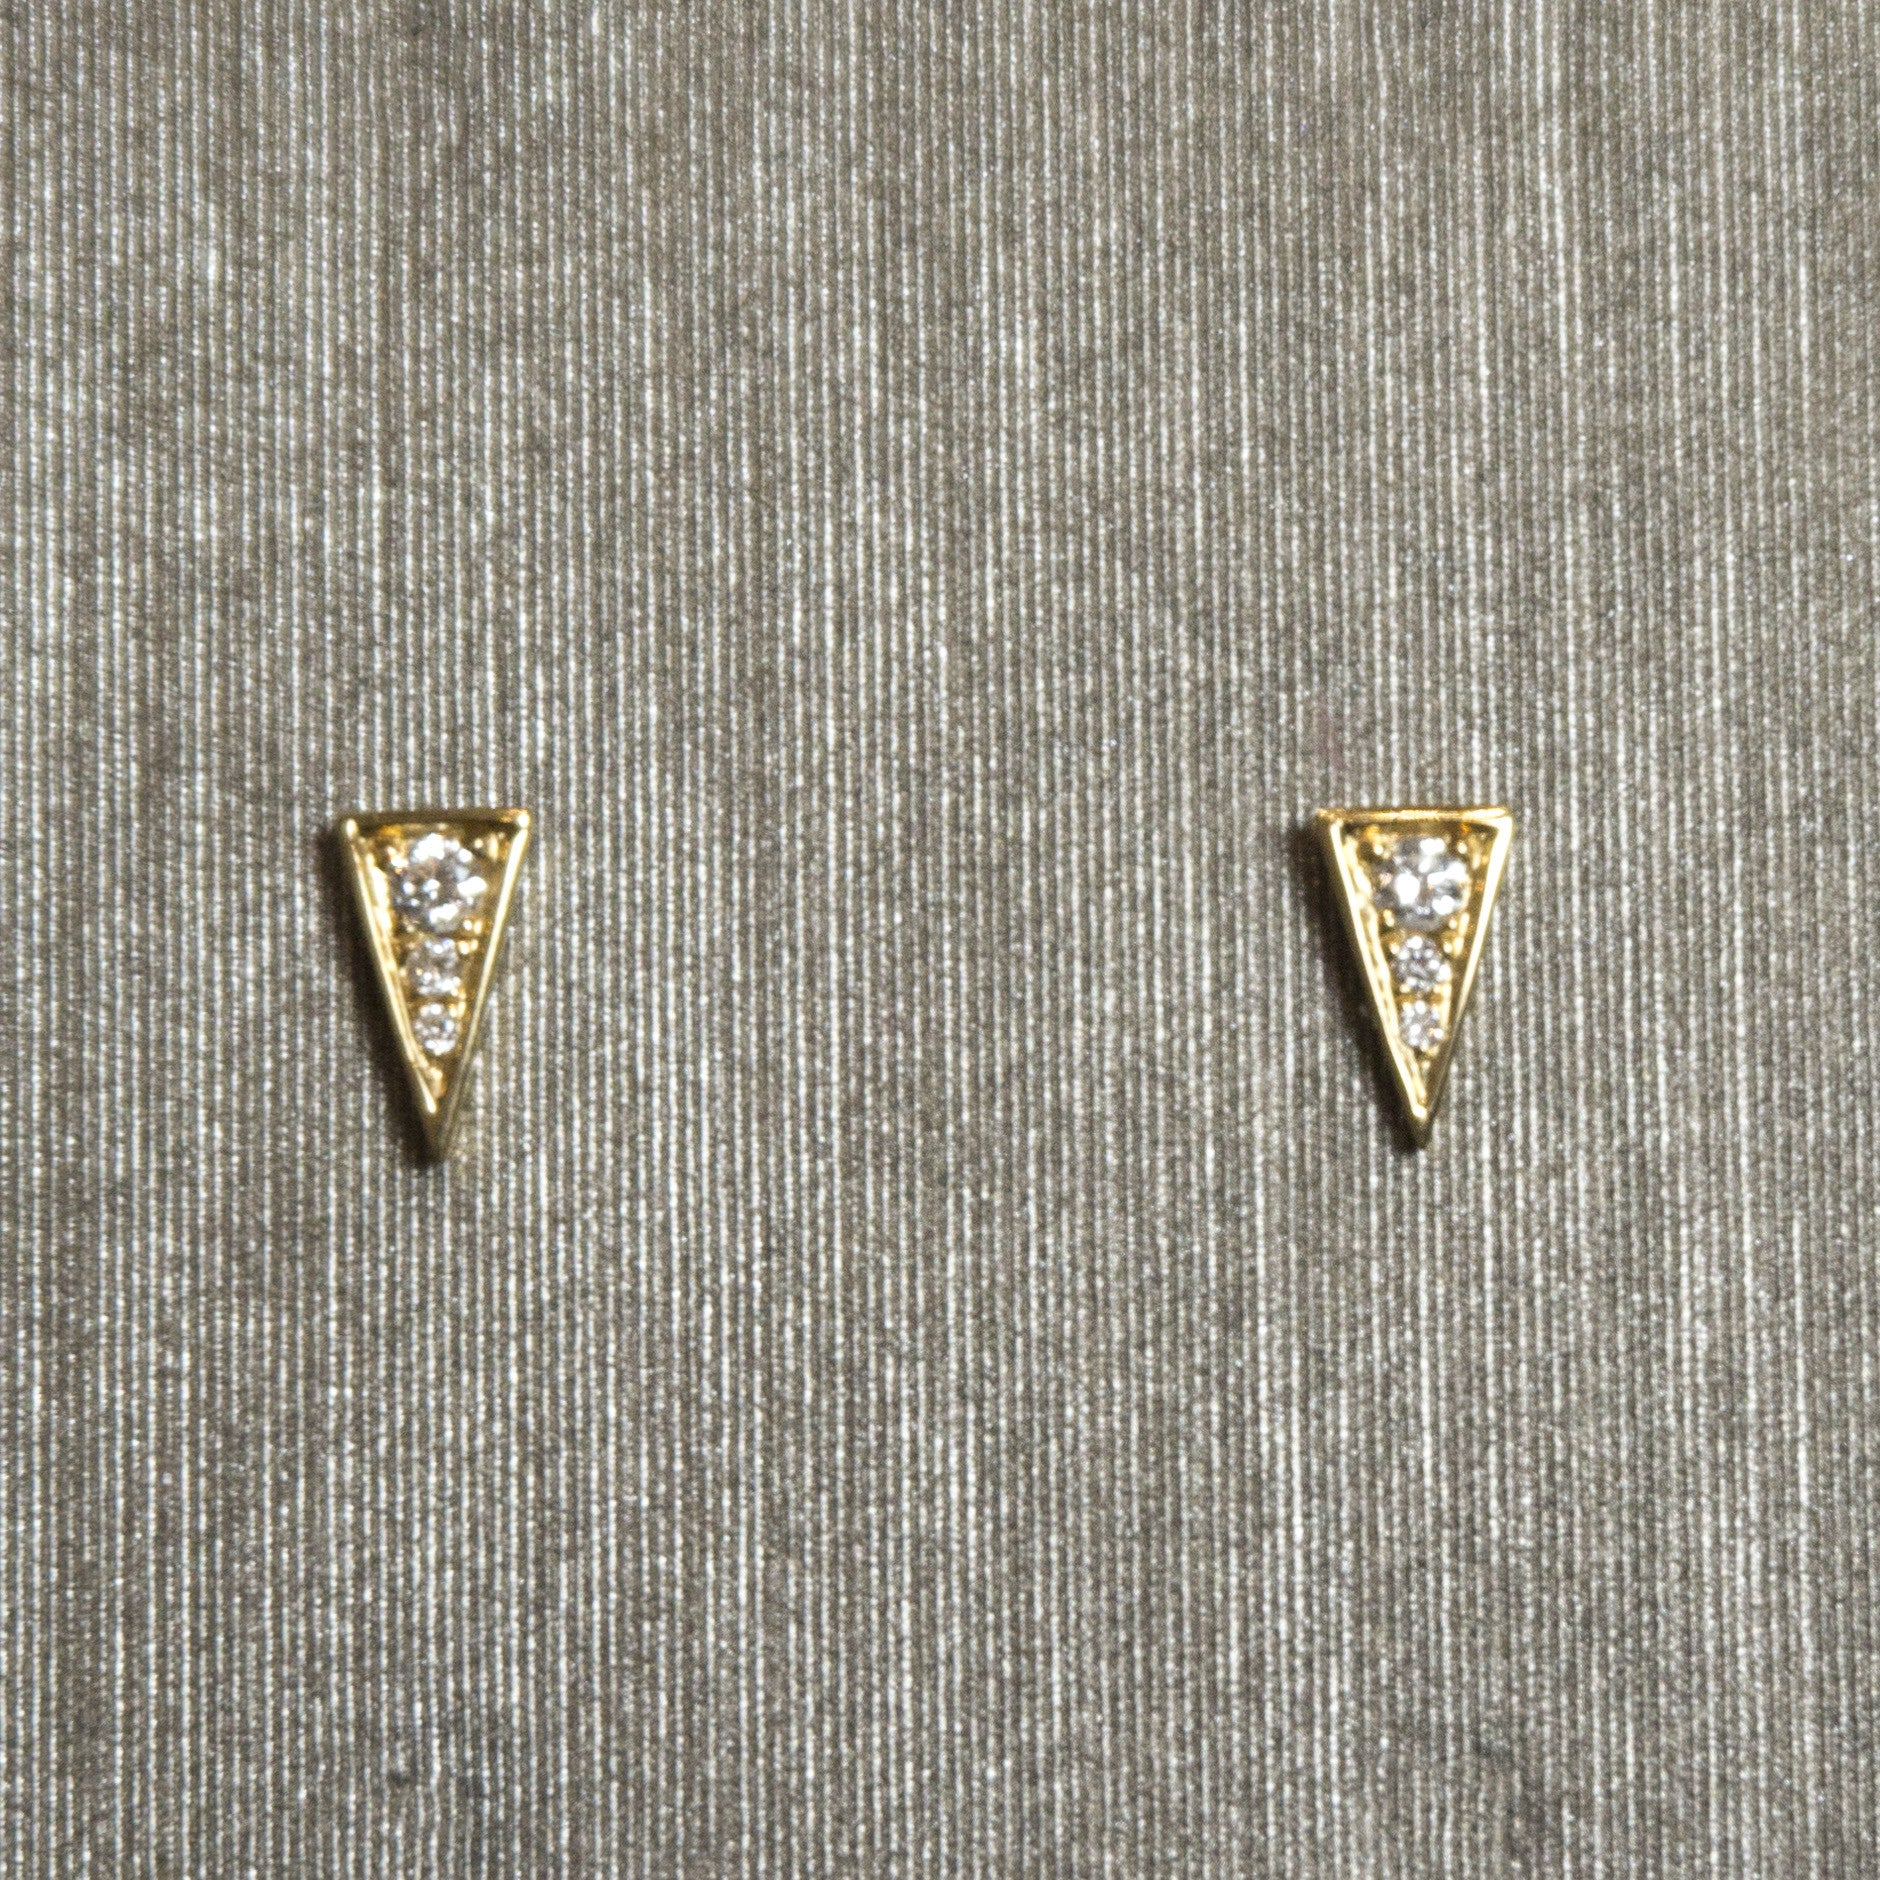 Rocks with Soul Long Triangle Studs Yellow Gold